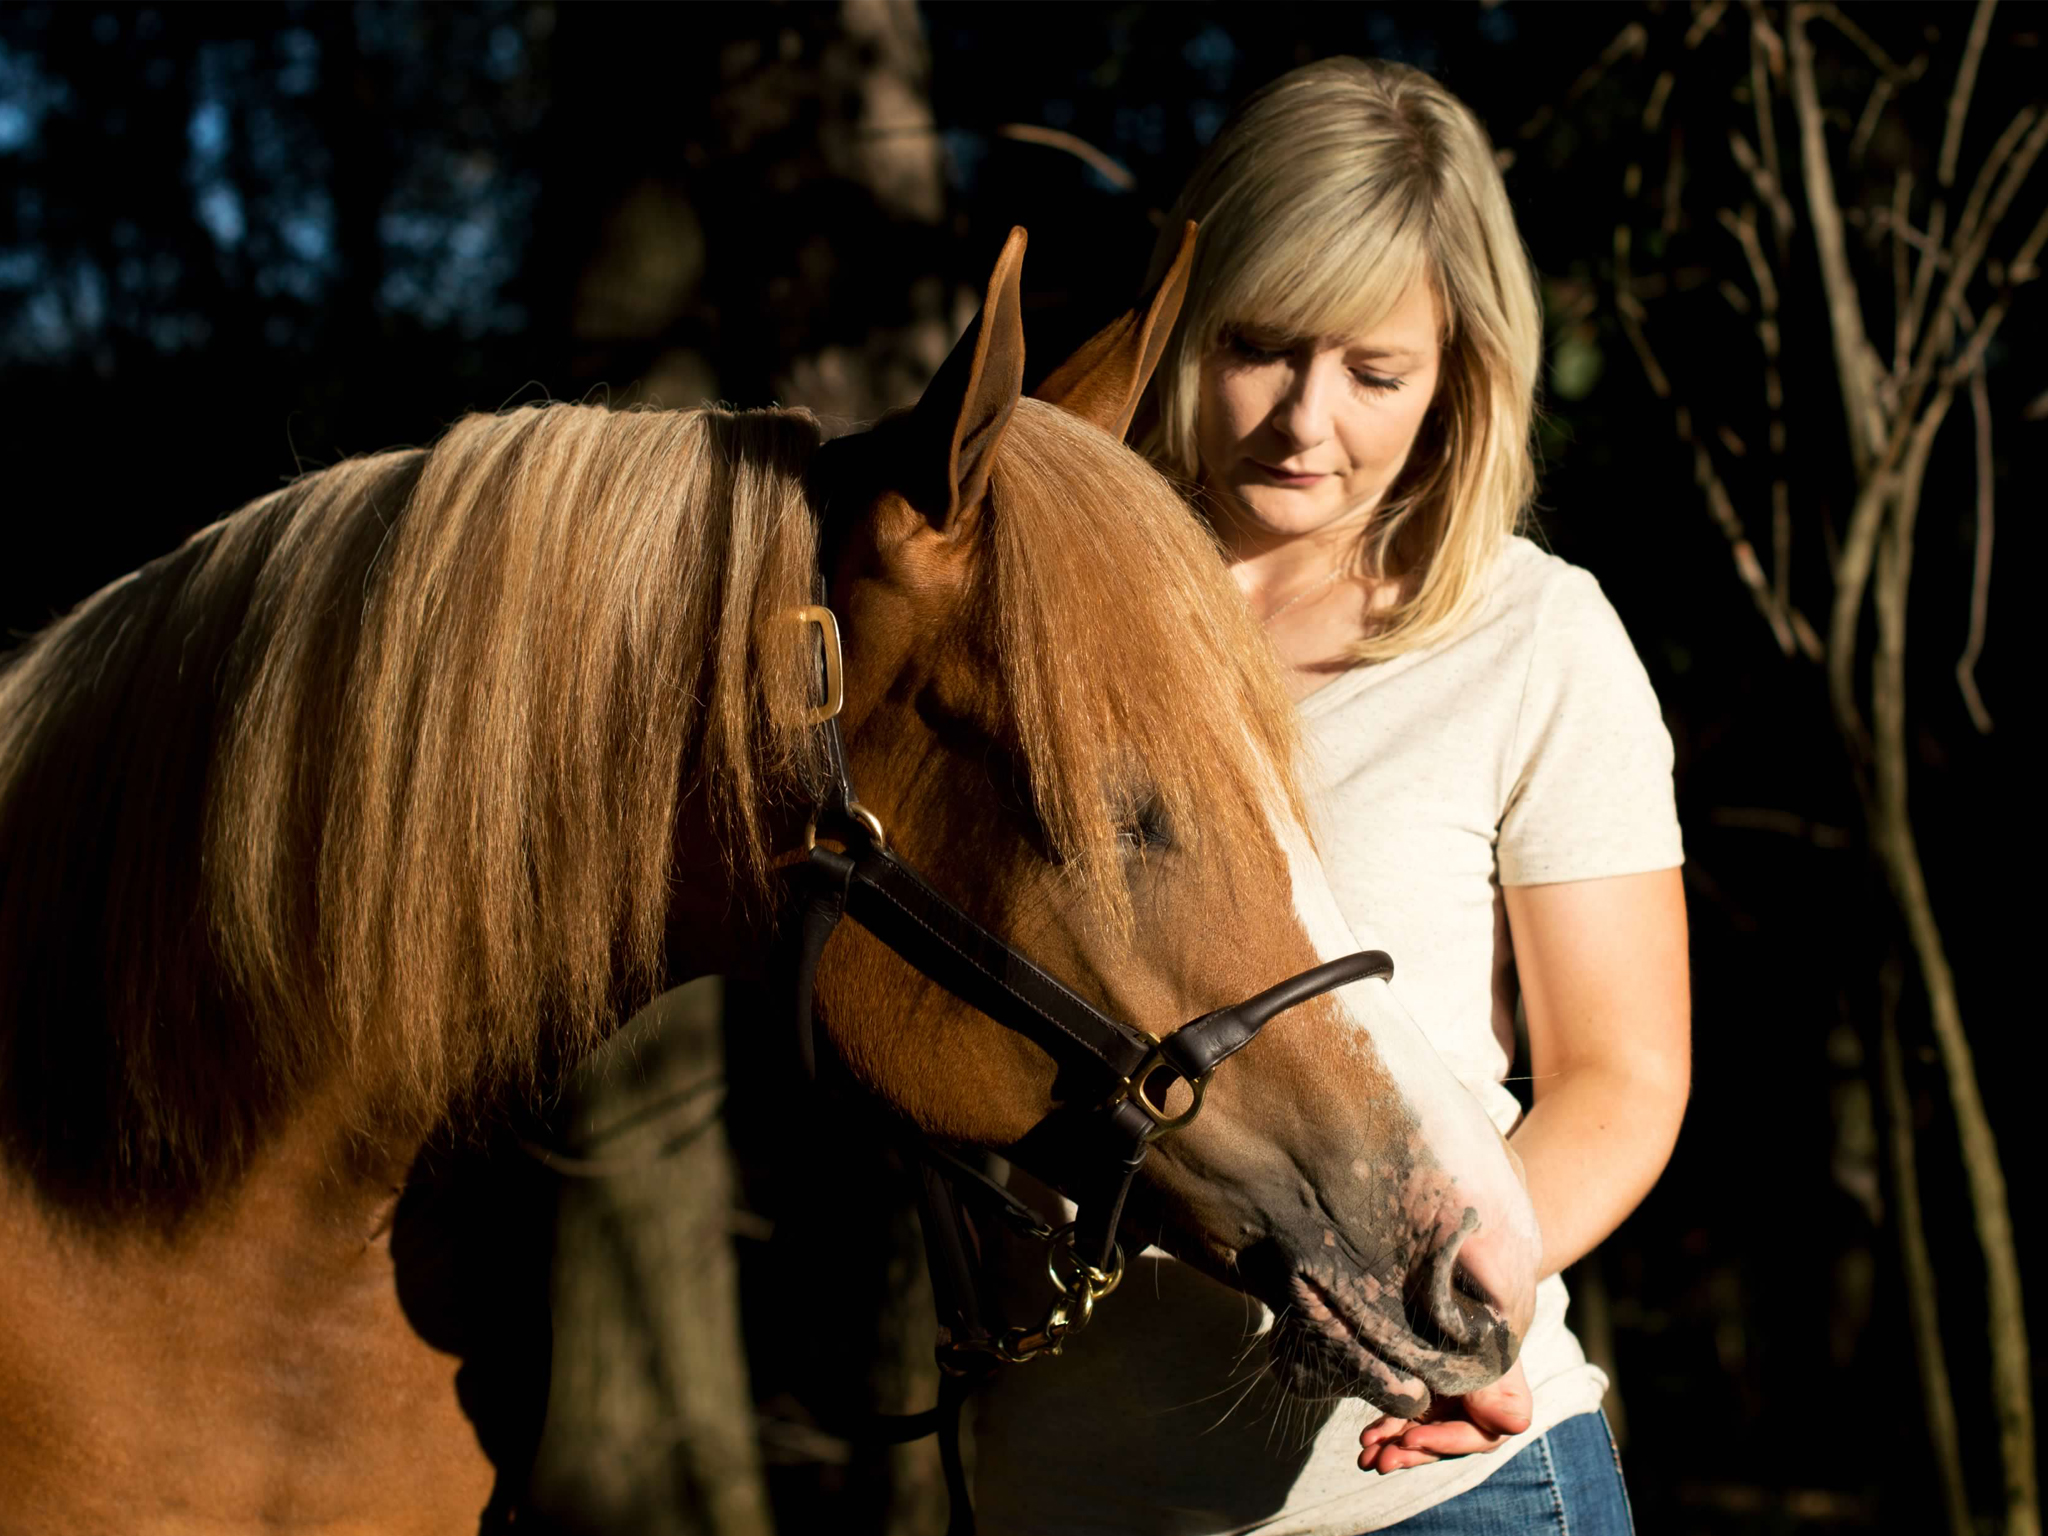 A woman stand beside her horse on a warm evening.